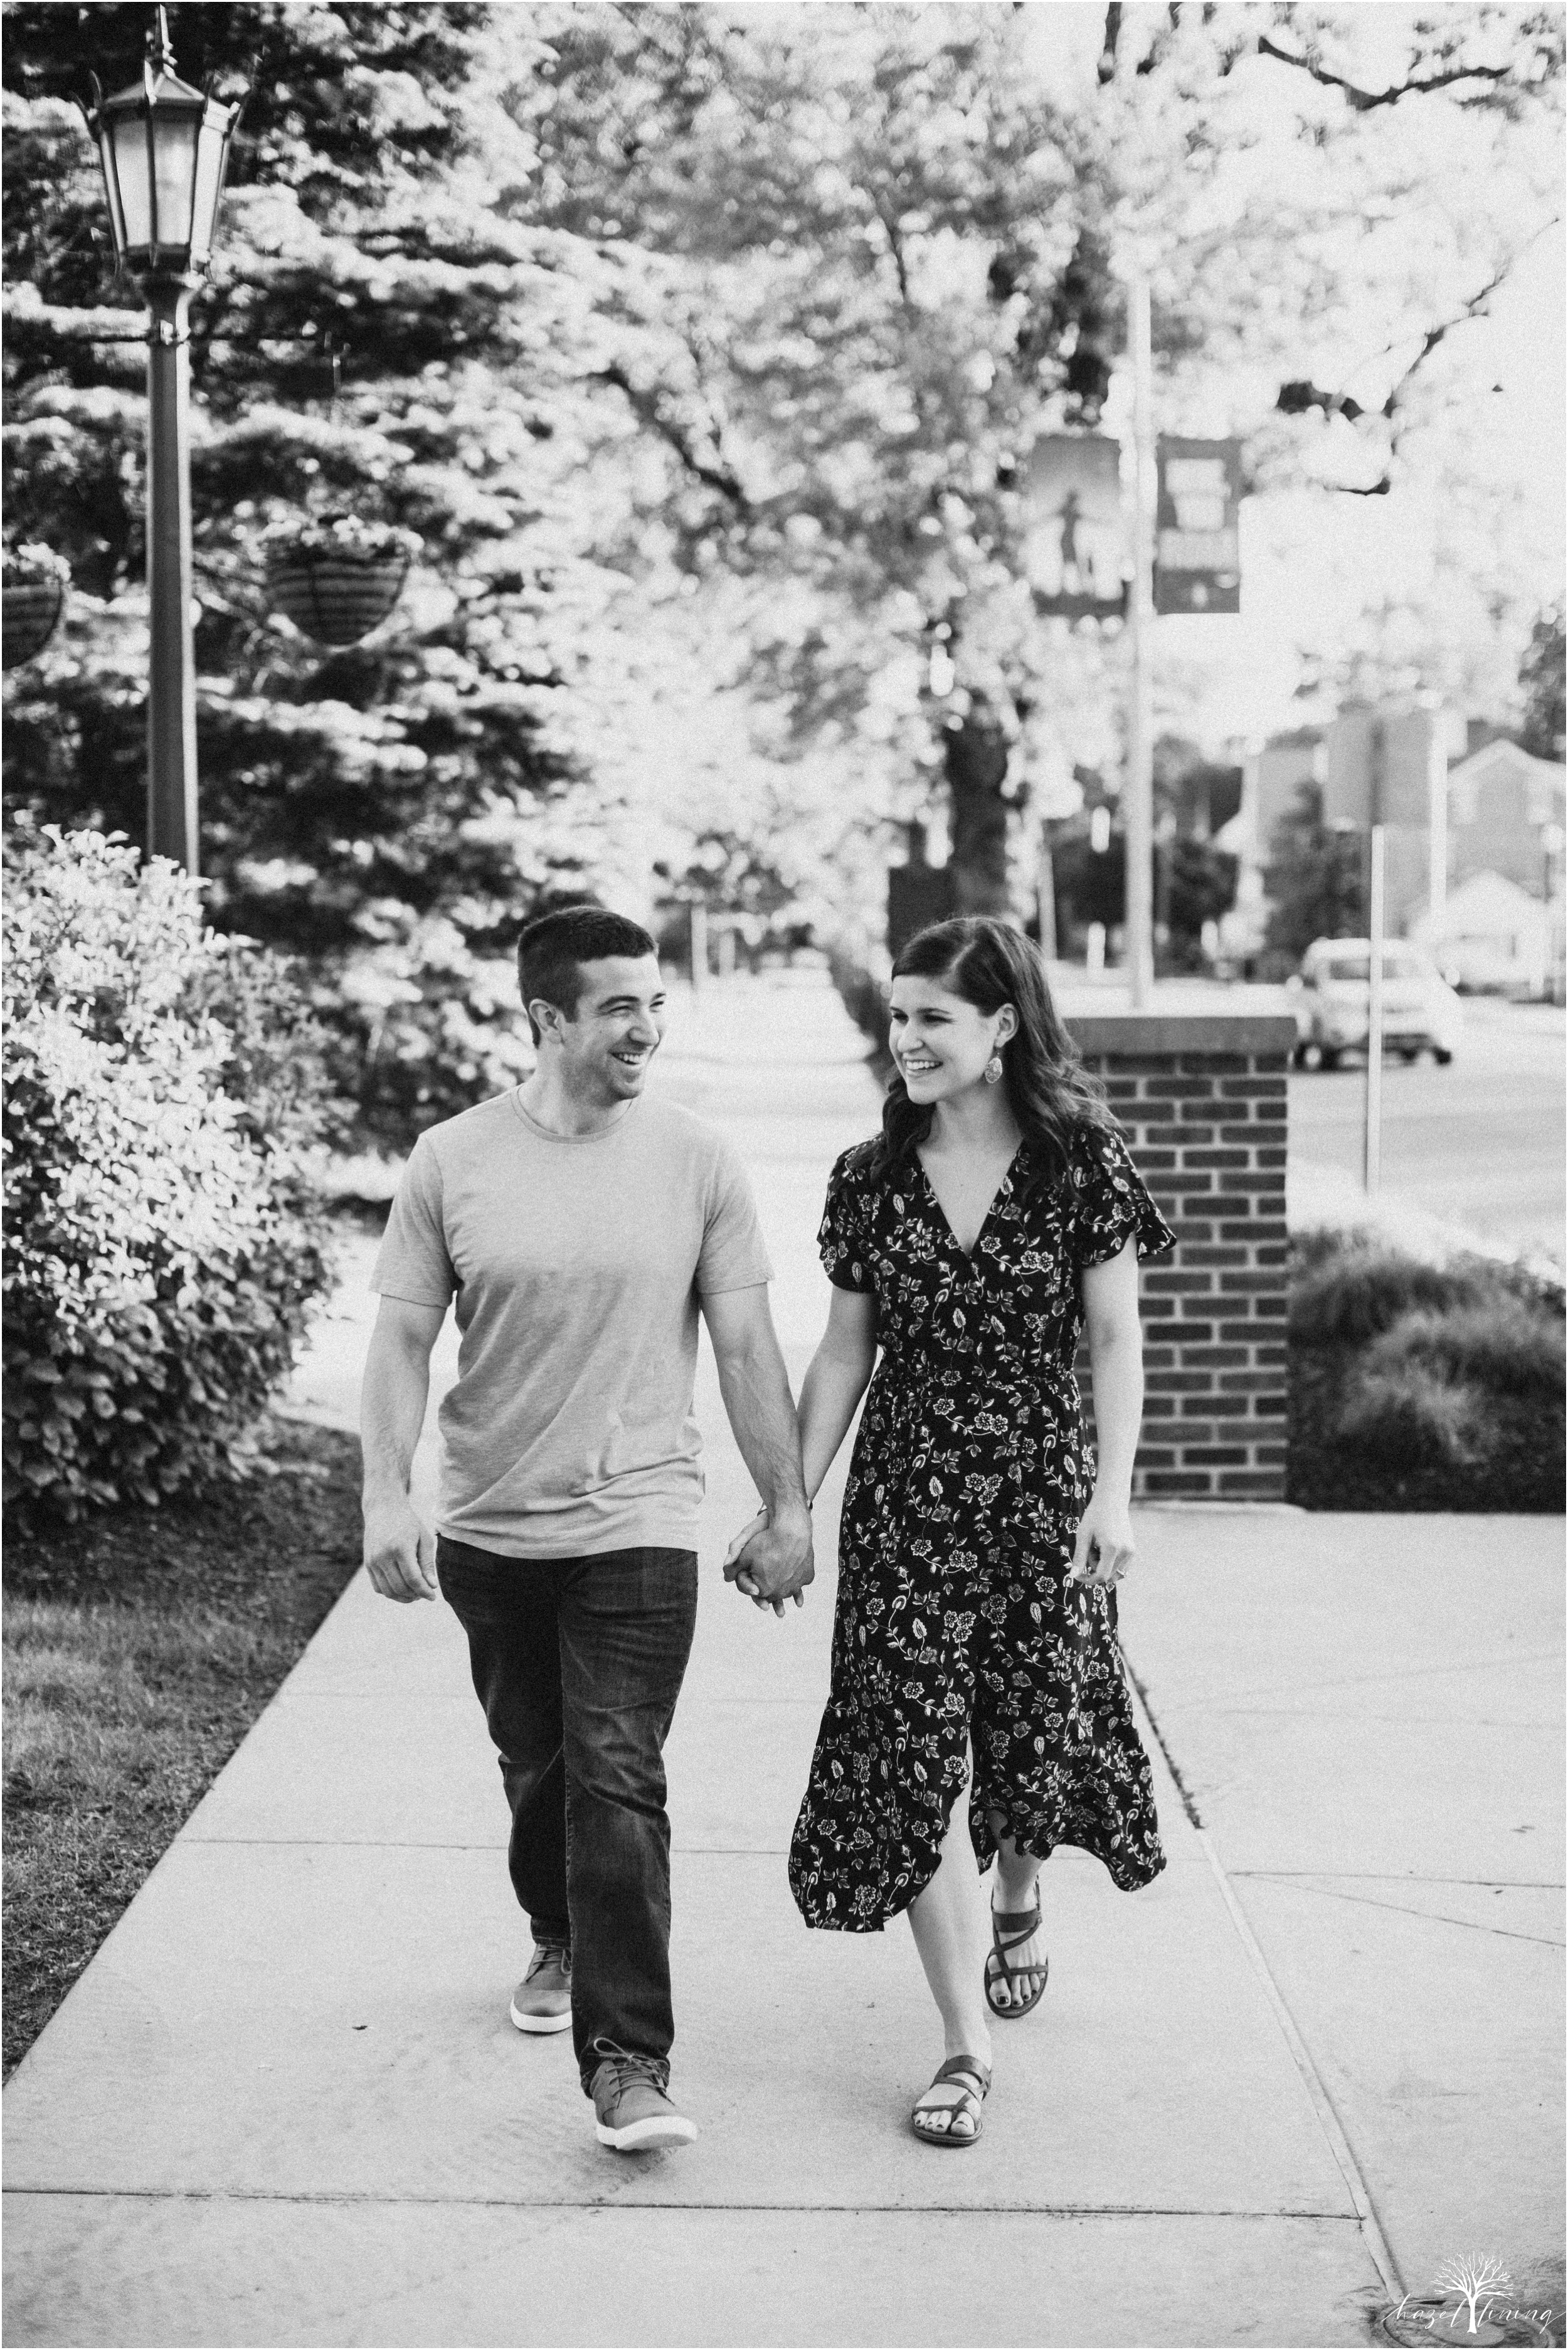 ellyn-jack-kutztown-university-of-pennsylvania-engagement-session-hazel-lining-photography-destination-elopement-wedding-engagement-photography_0218.jpg